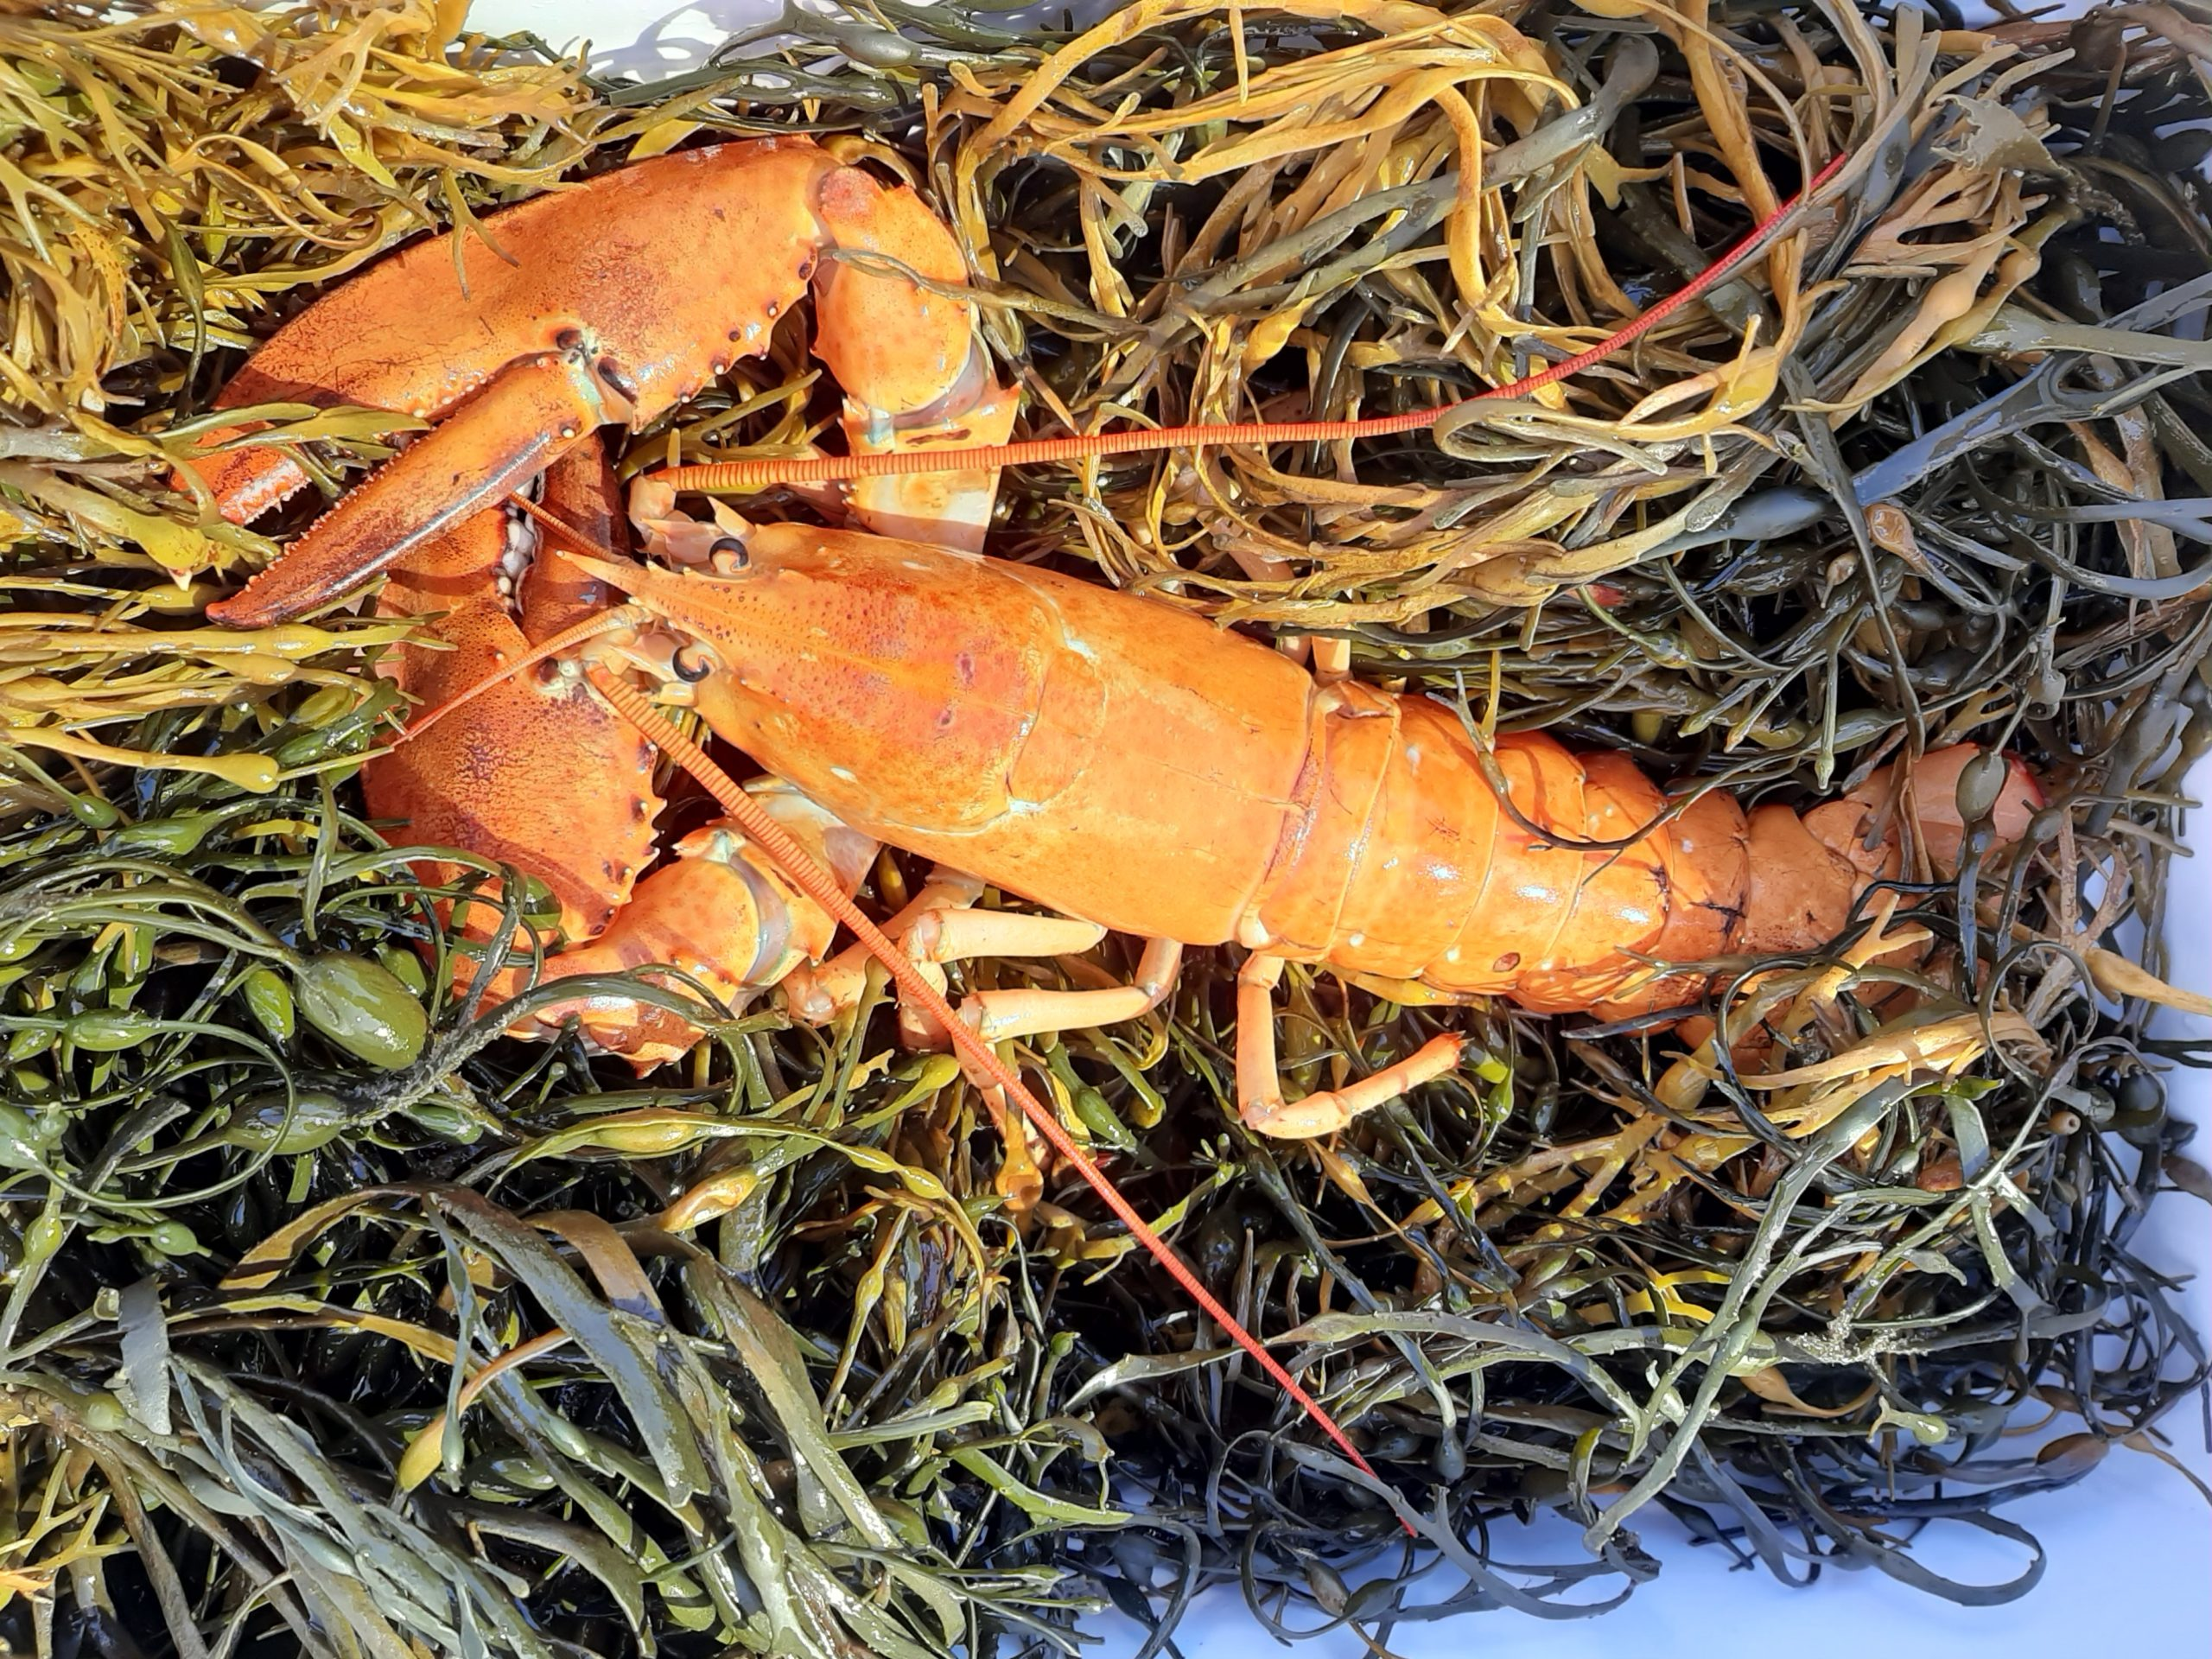 The lobster as it was transported to New York Aquarium, in a cooler on a bed of ice, seaweed and sea lettuce. DEBBIE TUMA